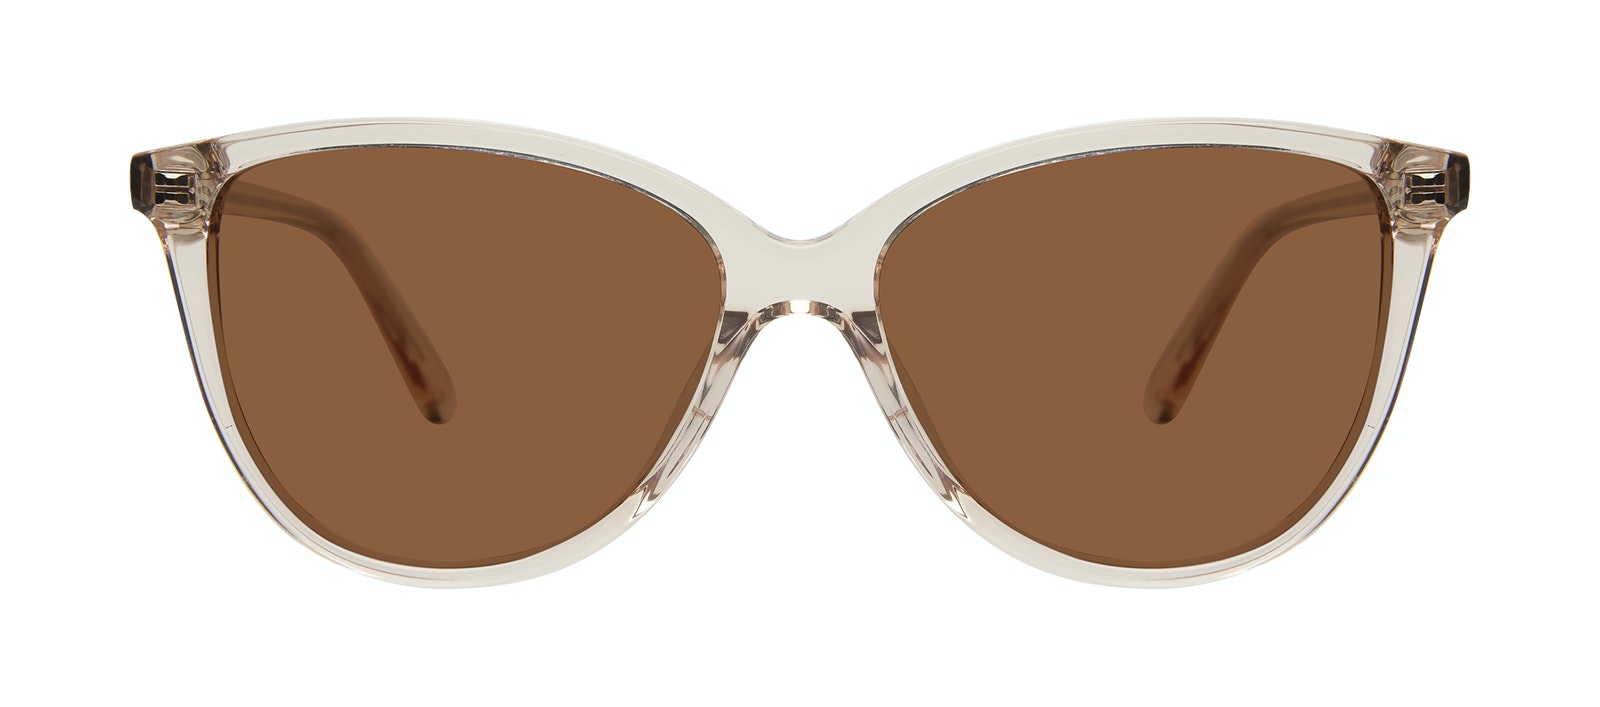 Affordable Fashion Glasses Cat Eye Sunglasses Women Tailor Blond Front